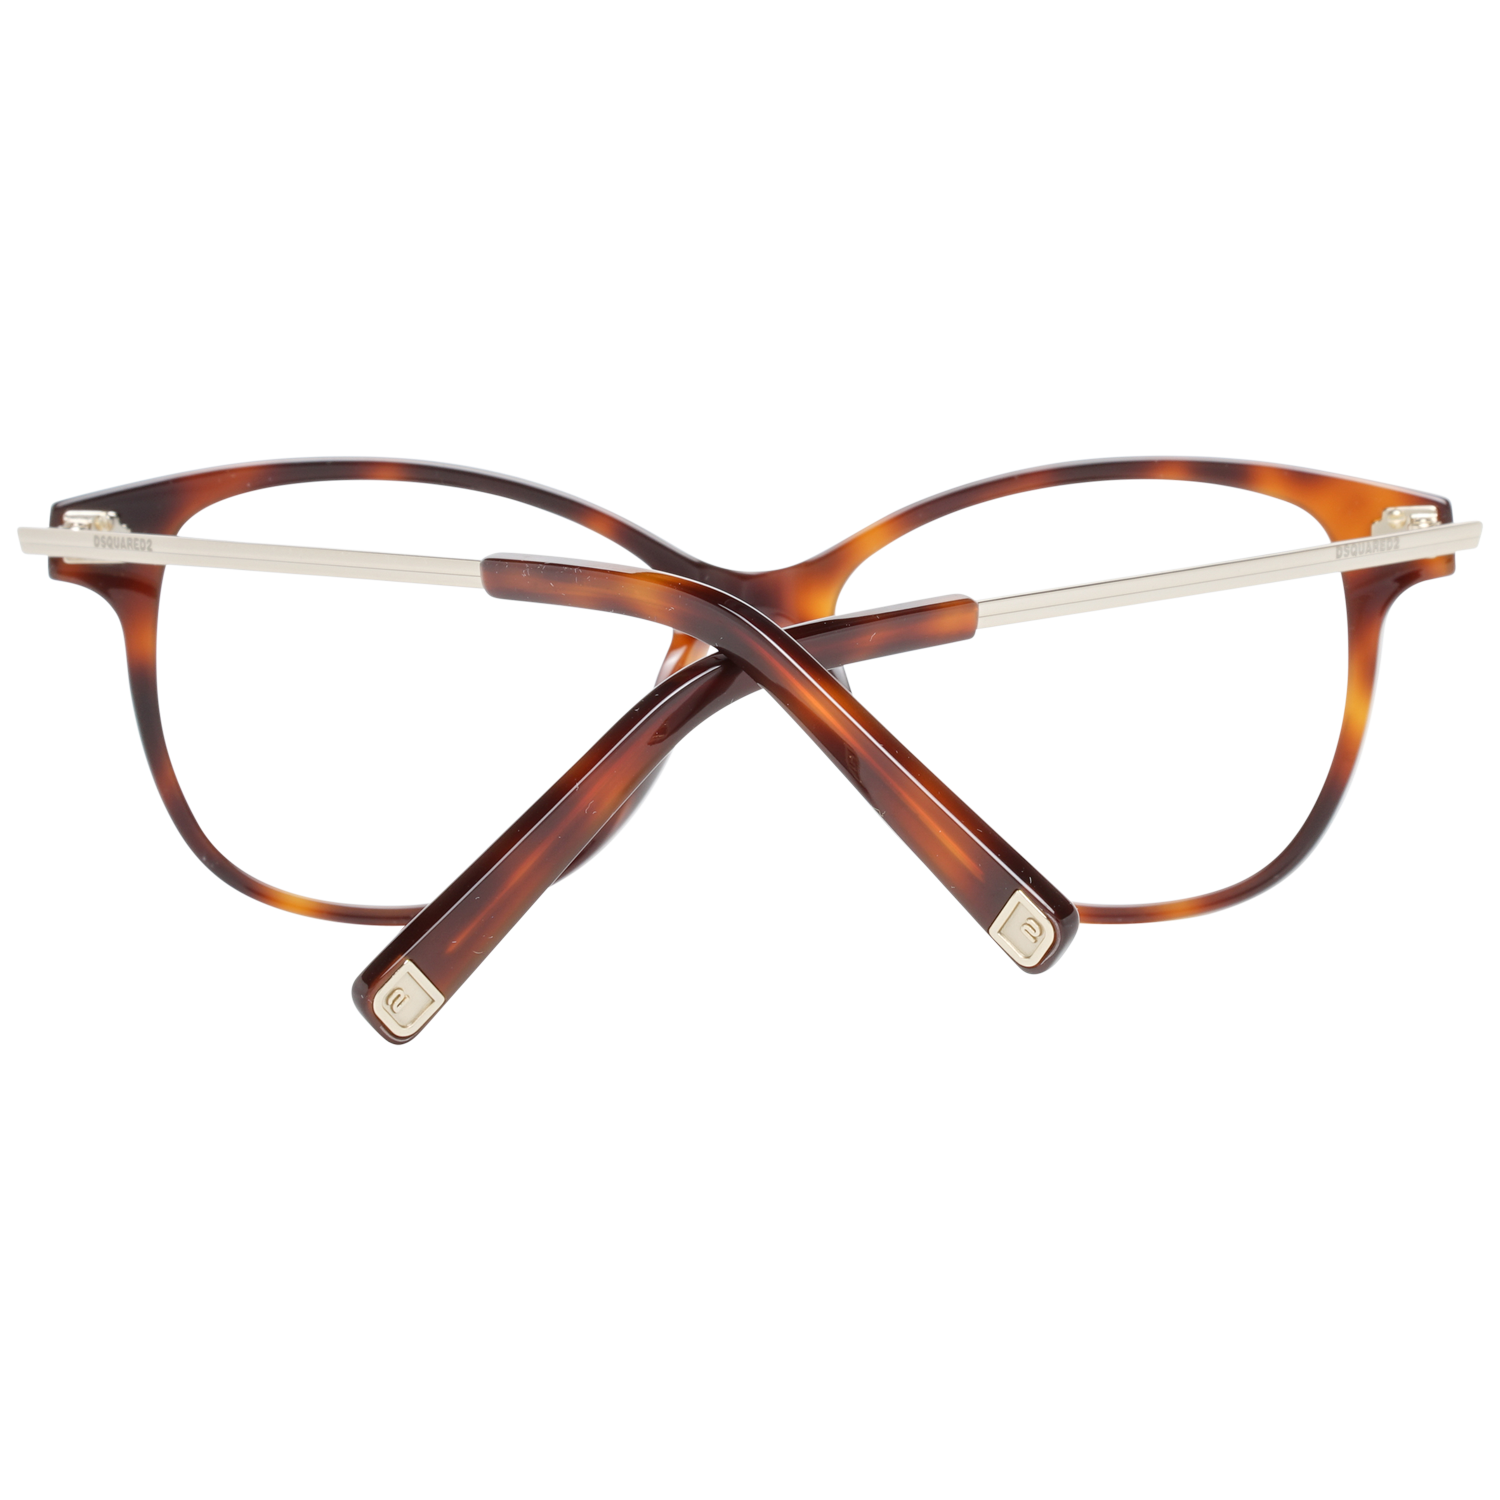 Dsquared2 Optical Frame DQ5287 052 53 Women Brown